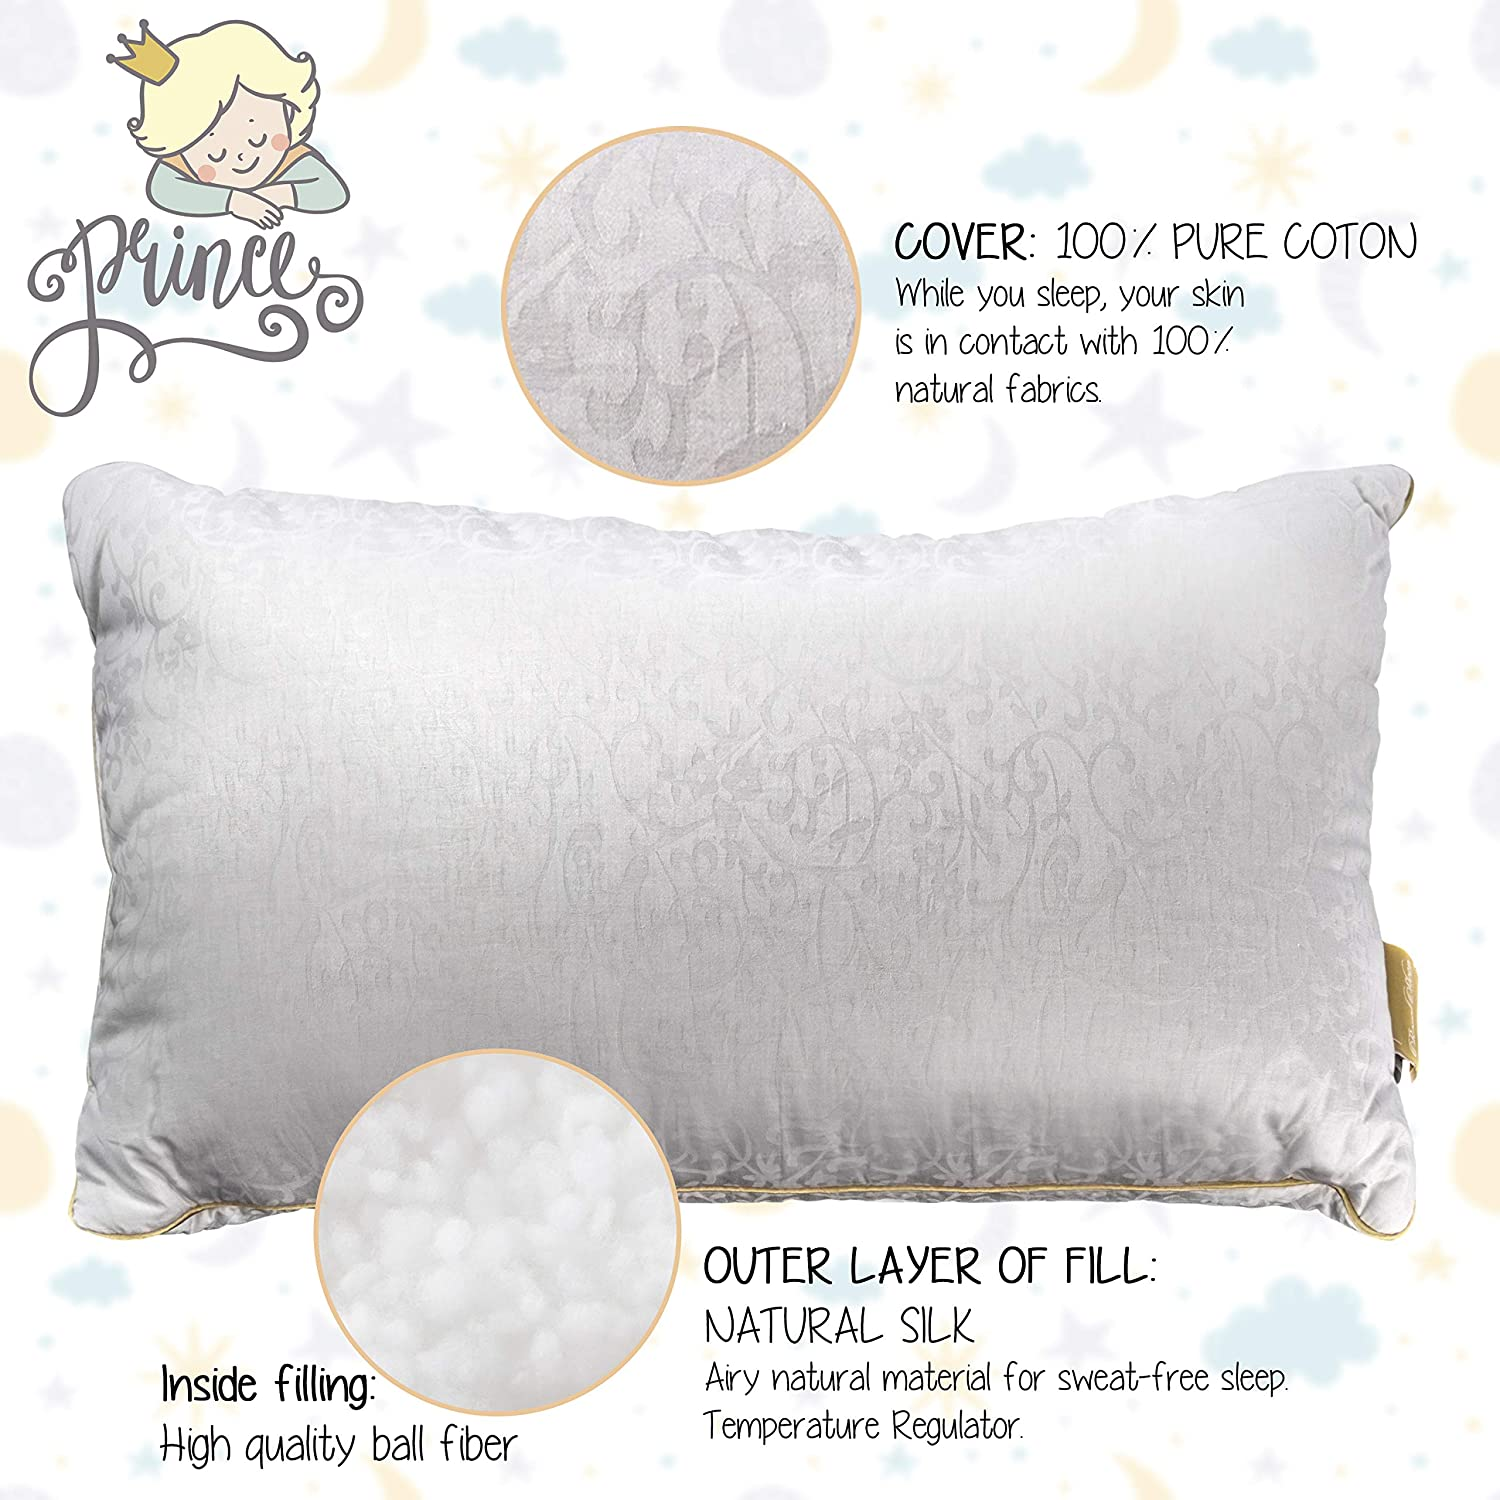 Soft Childrens Pillow According to Oeko-Tex Standard 100 Hypoallergenic Baby Pillow for All Sleeping Positions Childrens Pillow 40 x 60 cm from 1 Year Healthy